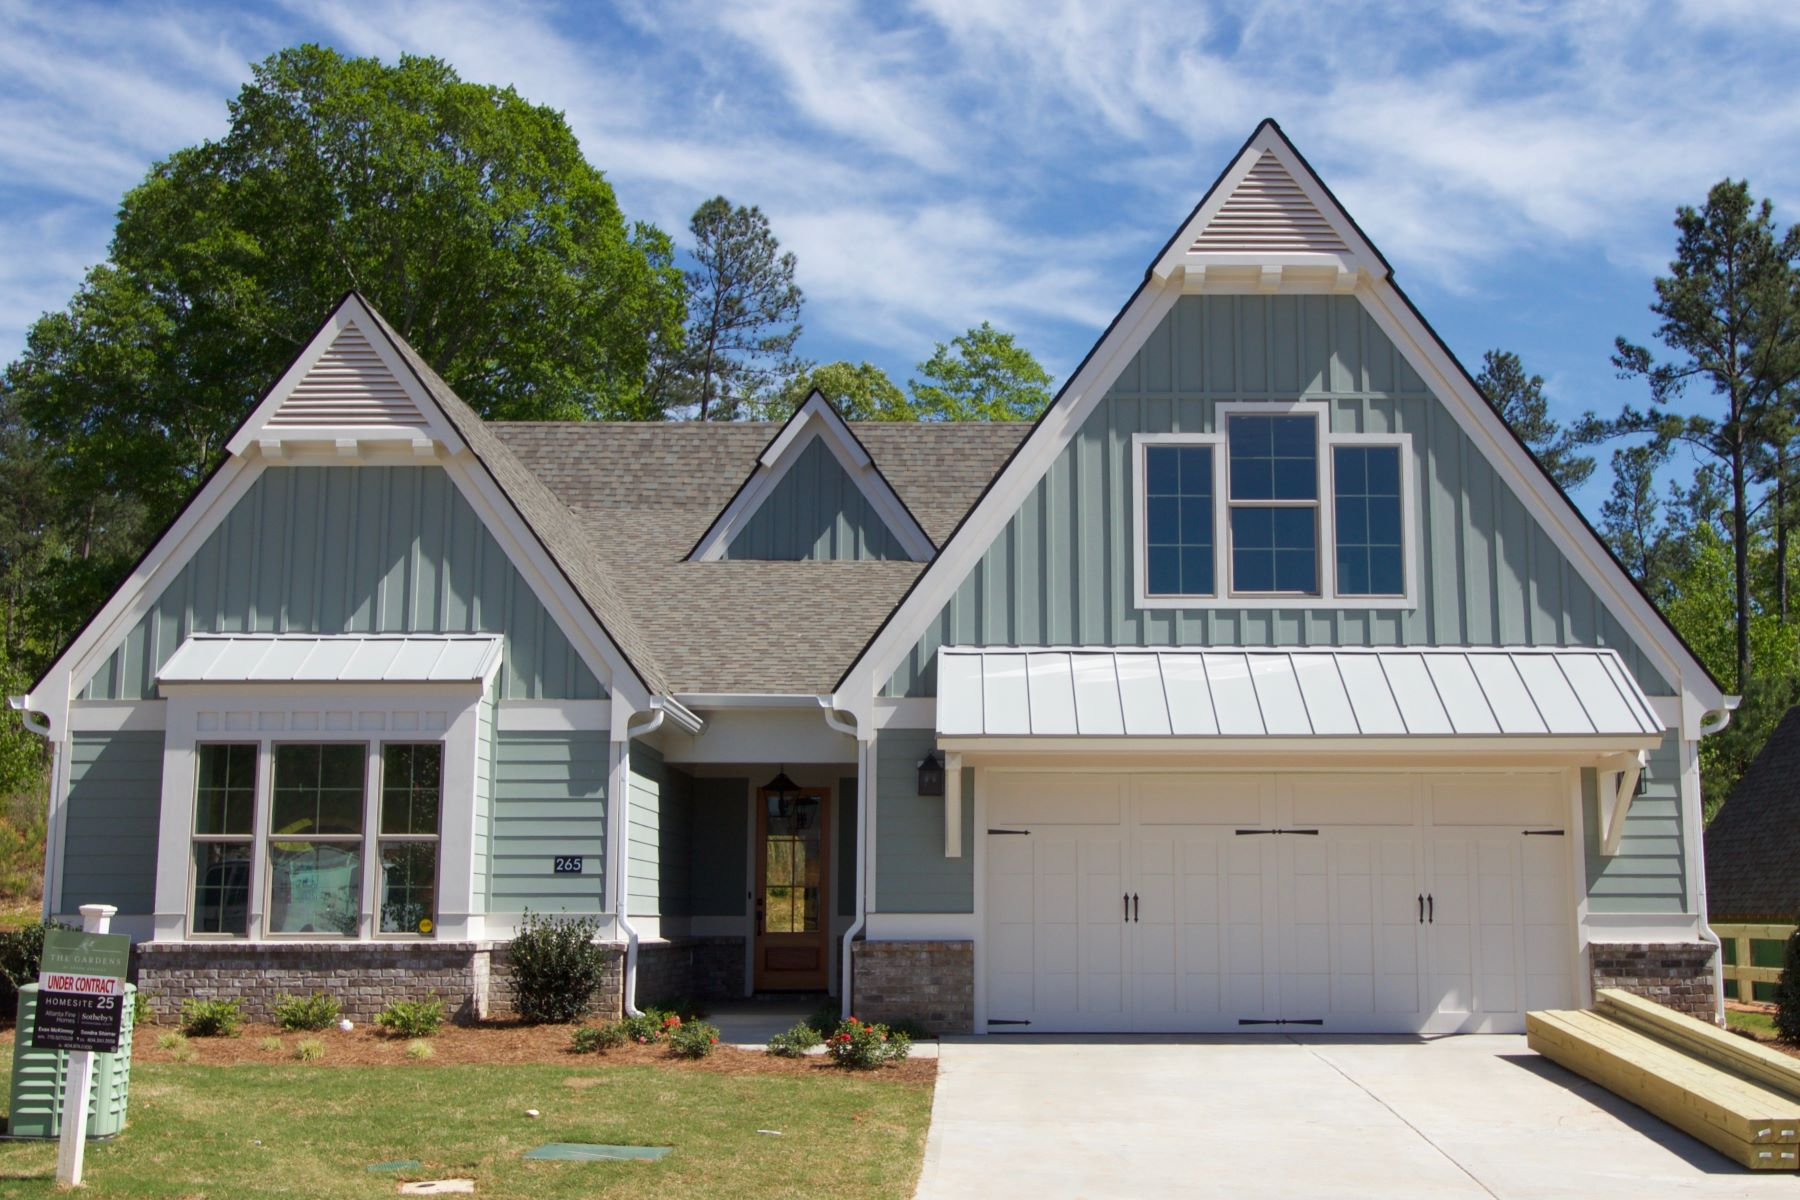 Single Family Homes for Sale at Wisteria Plan- One Level Open-Concept with Vaulted Rear Patio 285 Arbor Garden Circle Newnan, Georgia 30265 United States